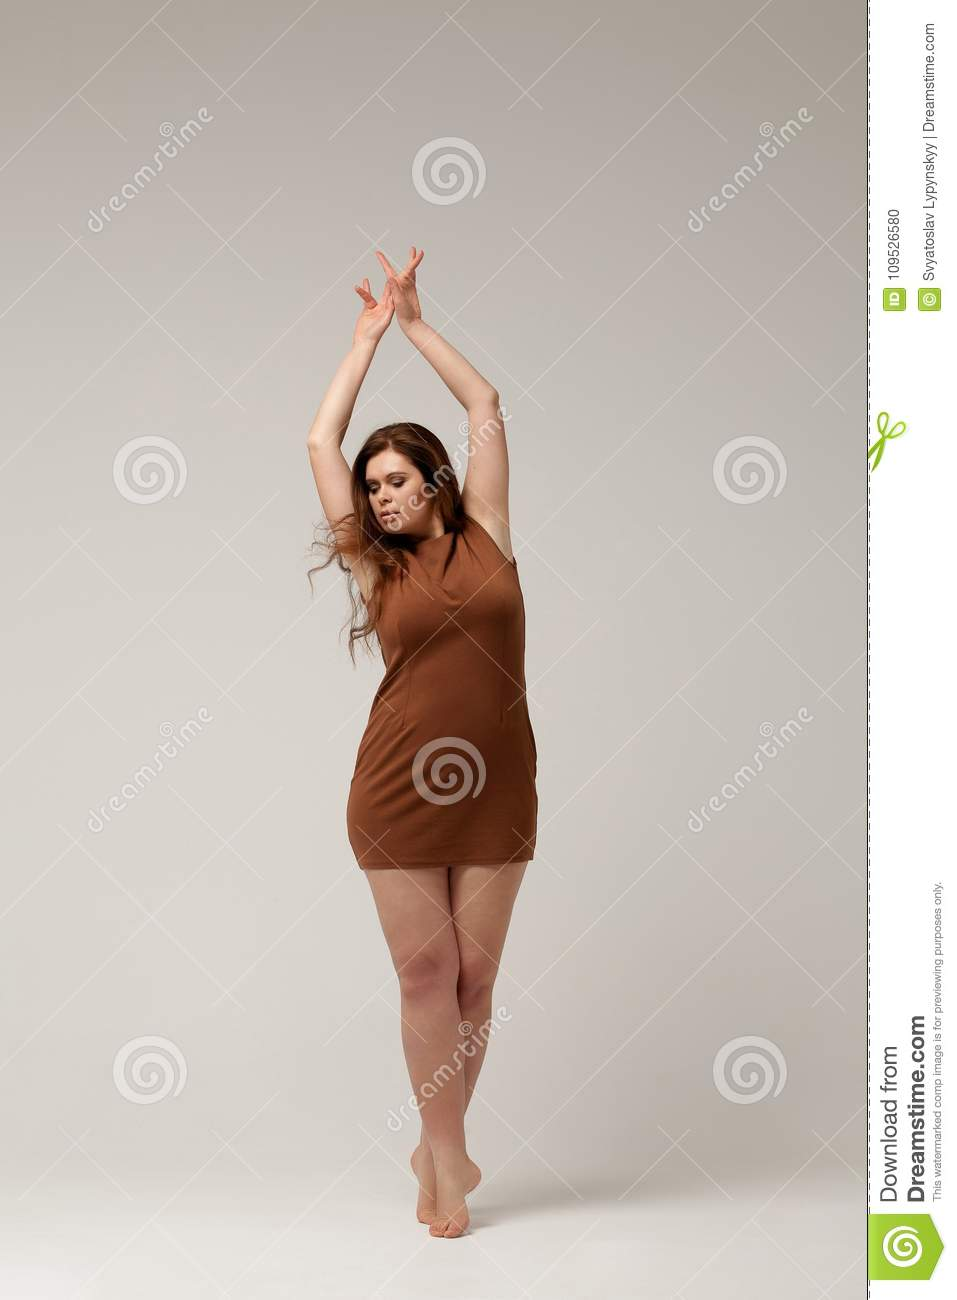 Plus Size Fashion Model In Brown Short Dress Stock Photo - Image of ...